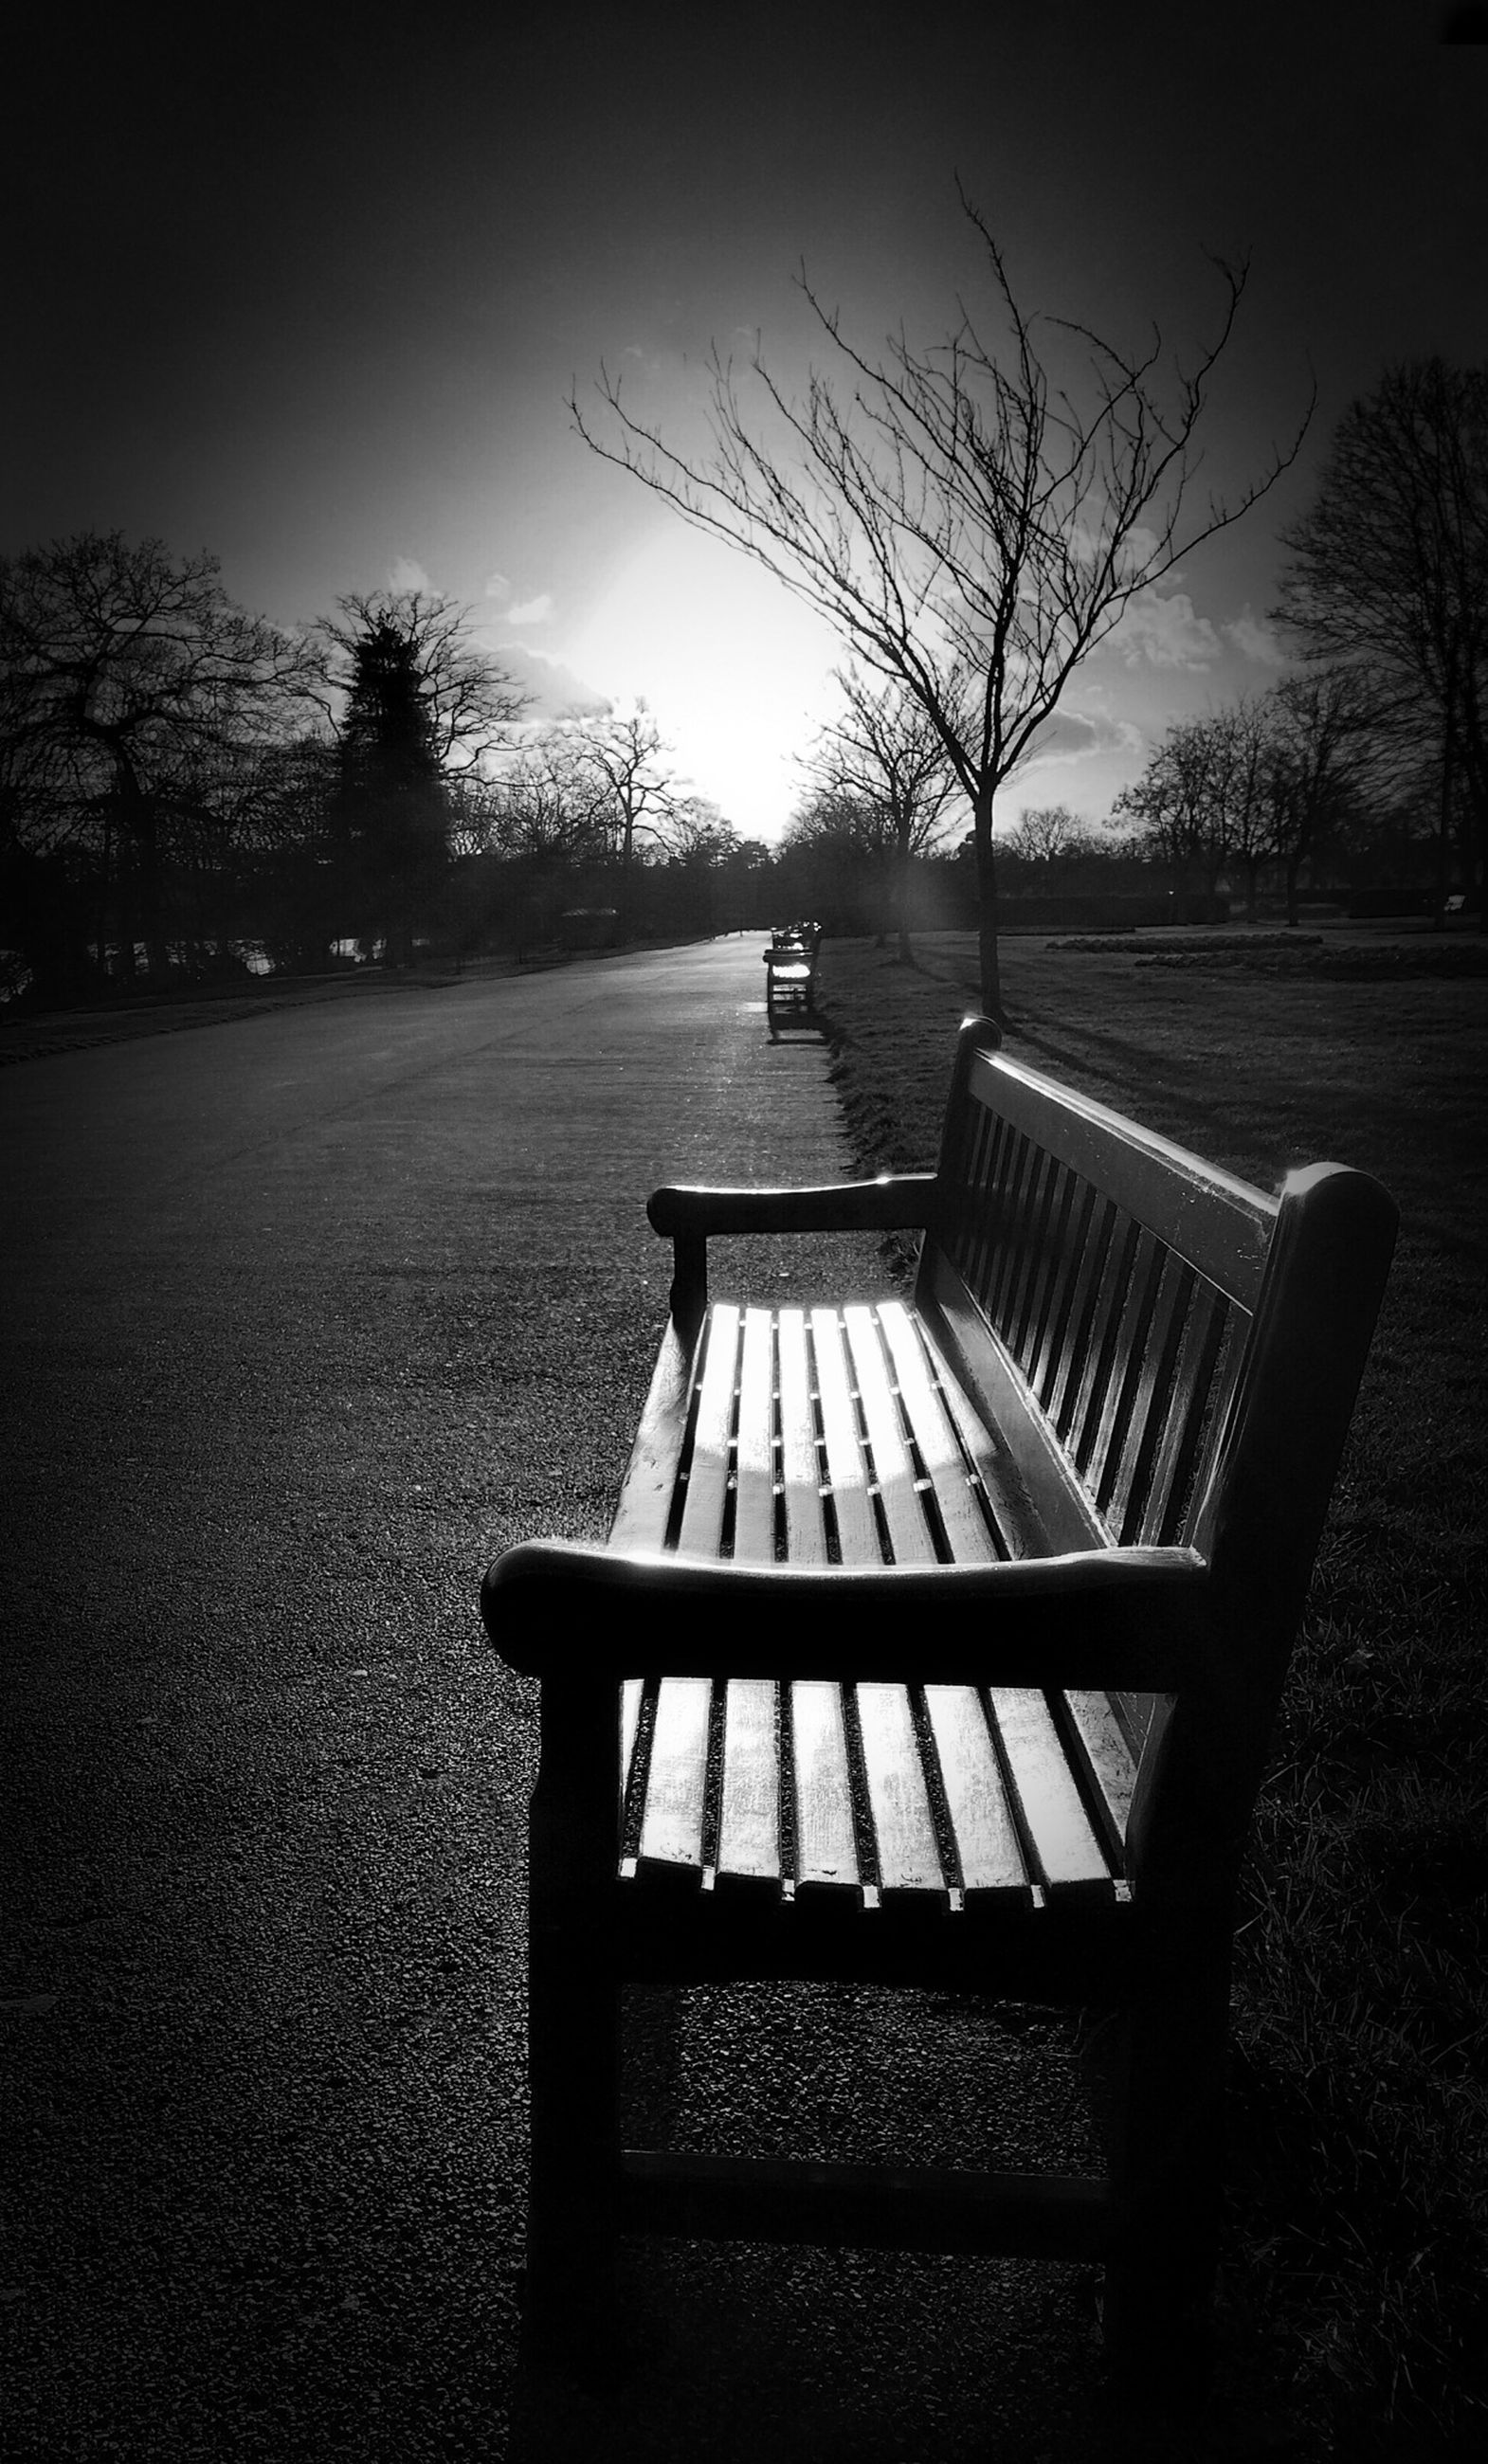 bench, tree, empty, tranquility, tranquil scene, absence, park bench, sunlight, nature, scenics, chair, park - man made space, clear sky, seat, wood - material, shadow, bare tree, landscape, beauty in nature, grass